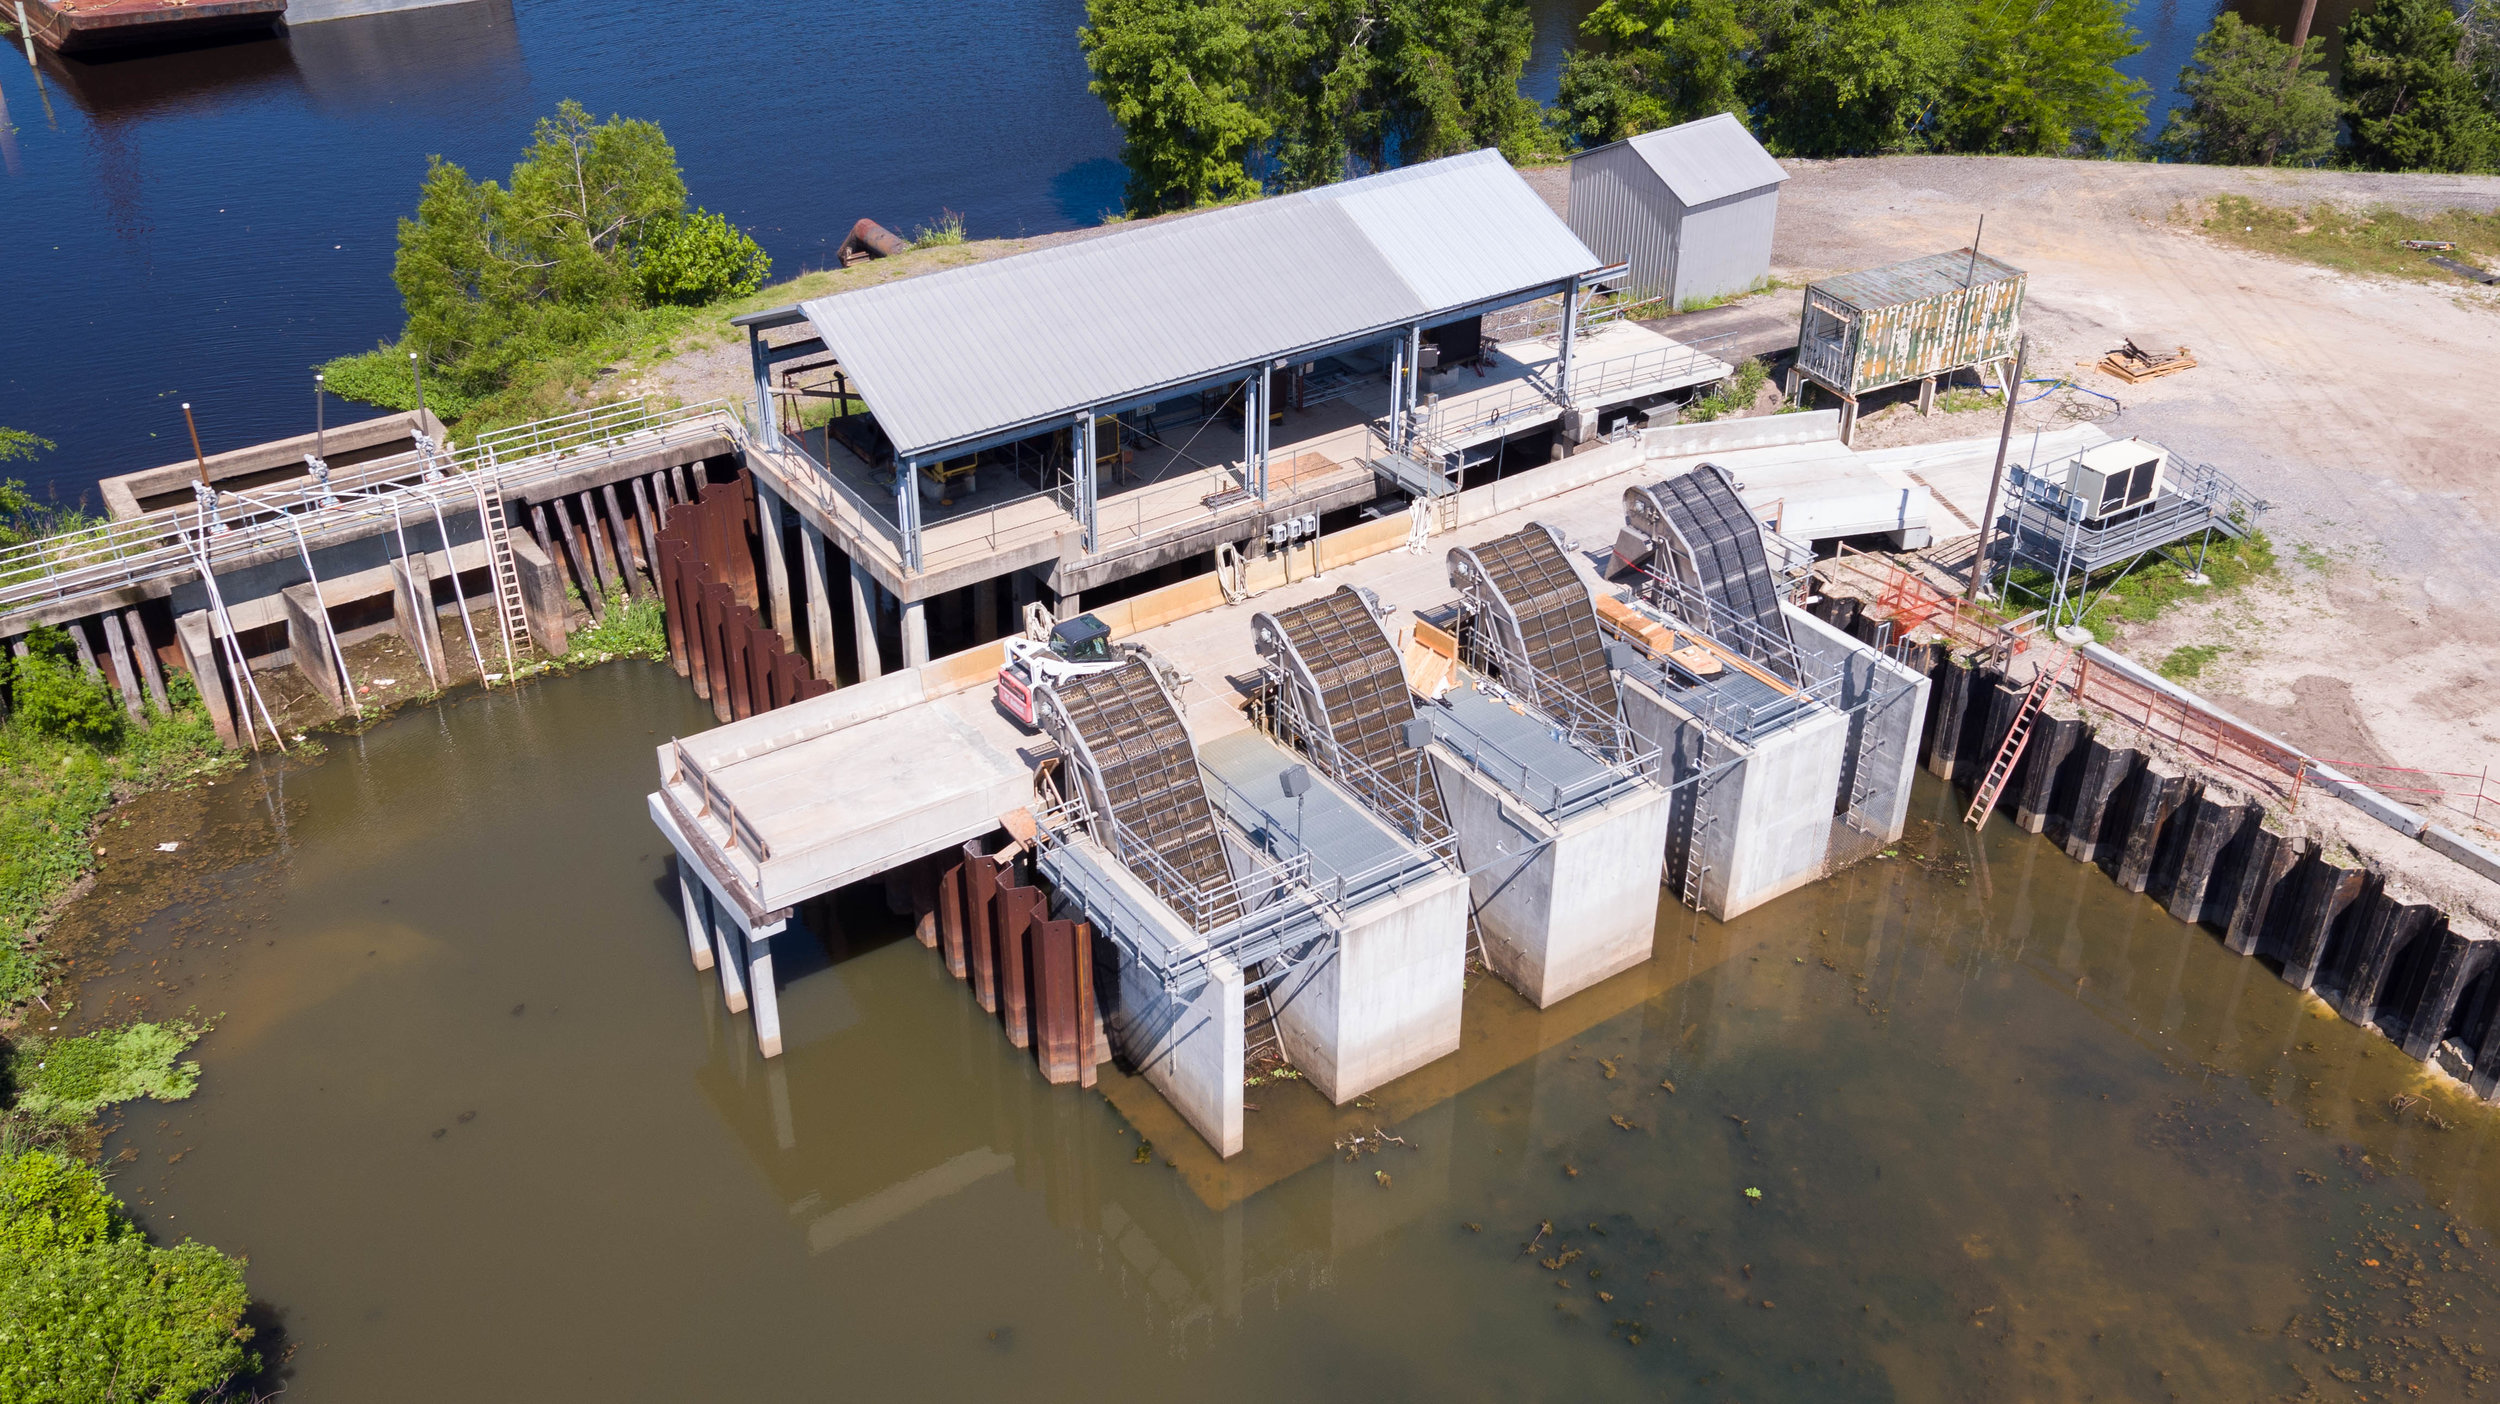 UAV Spillway Dam Inspection New Orleans Aerial Photography Foley Aerial Services